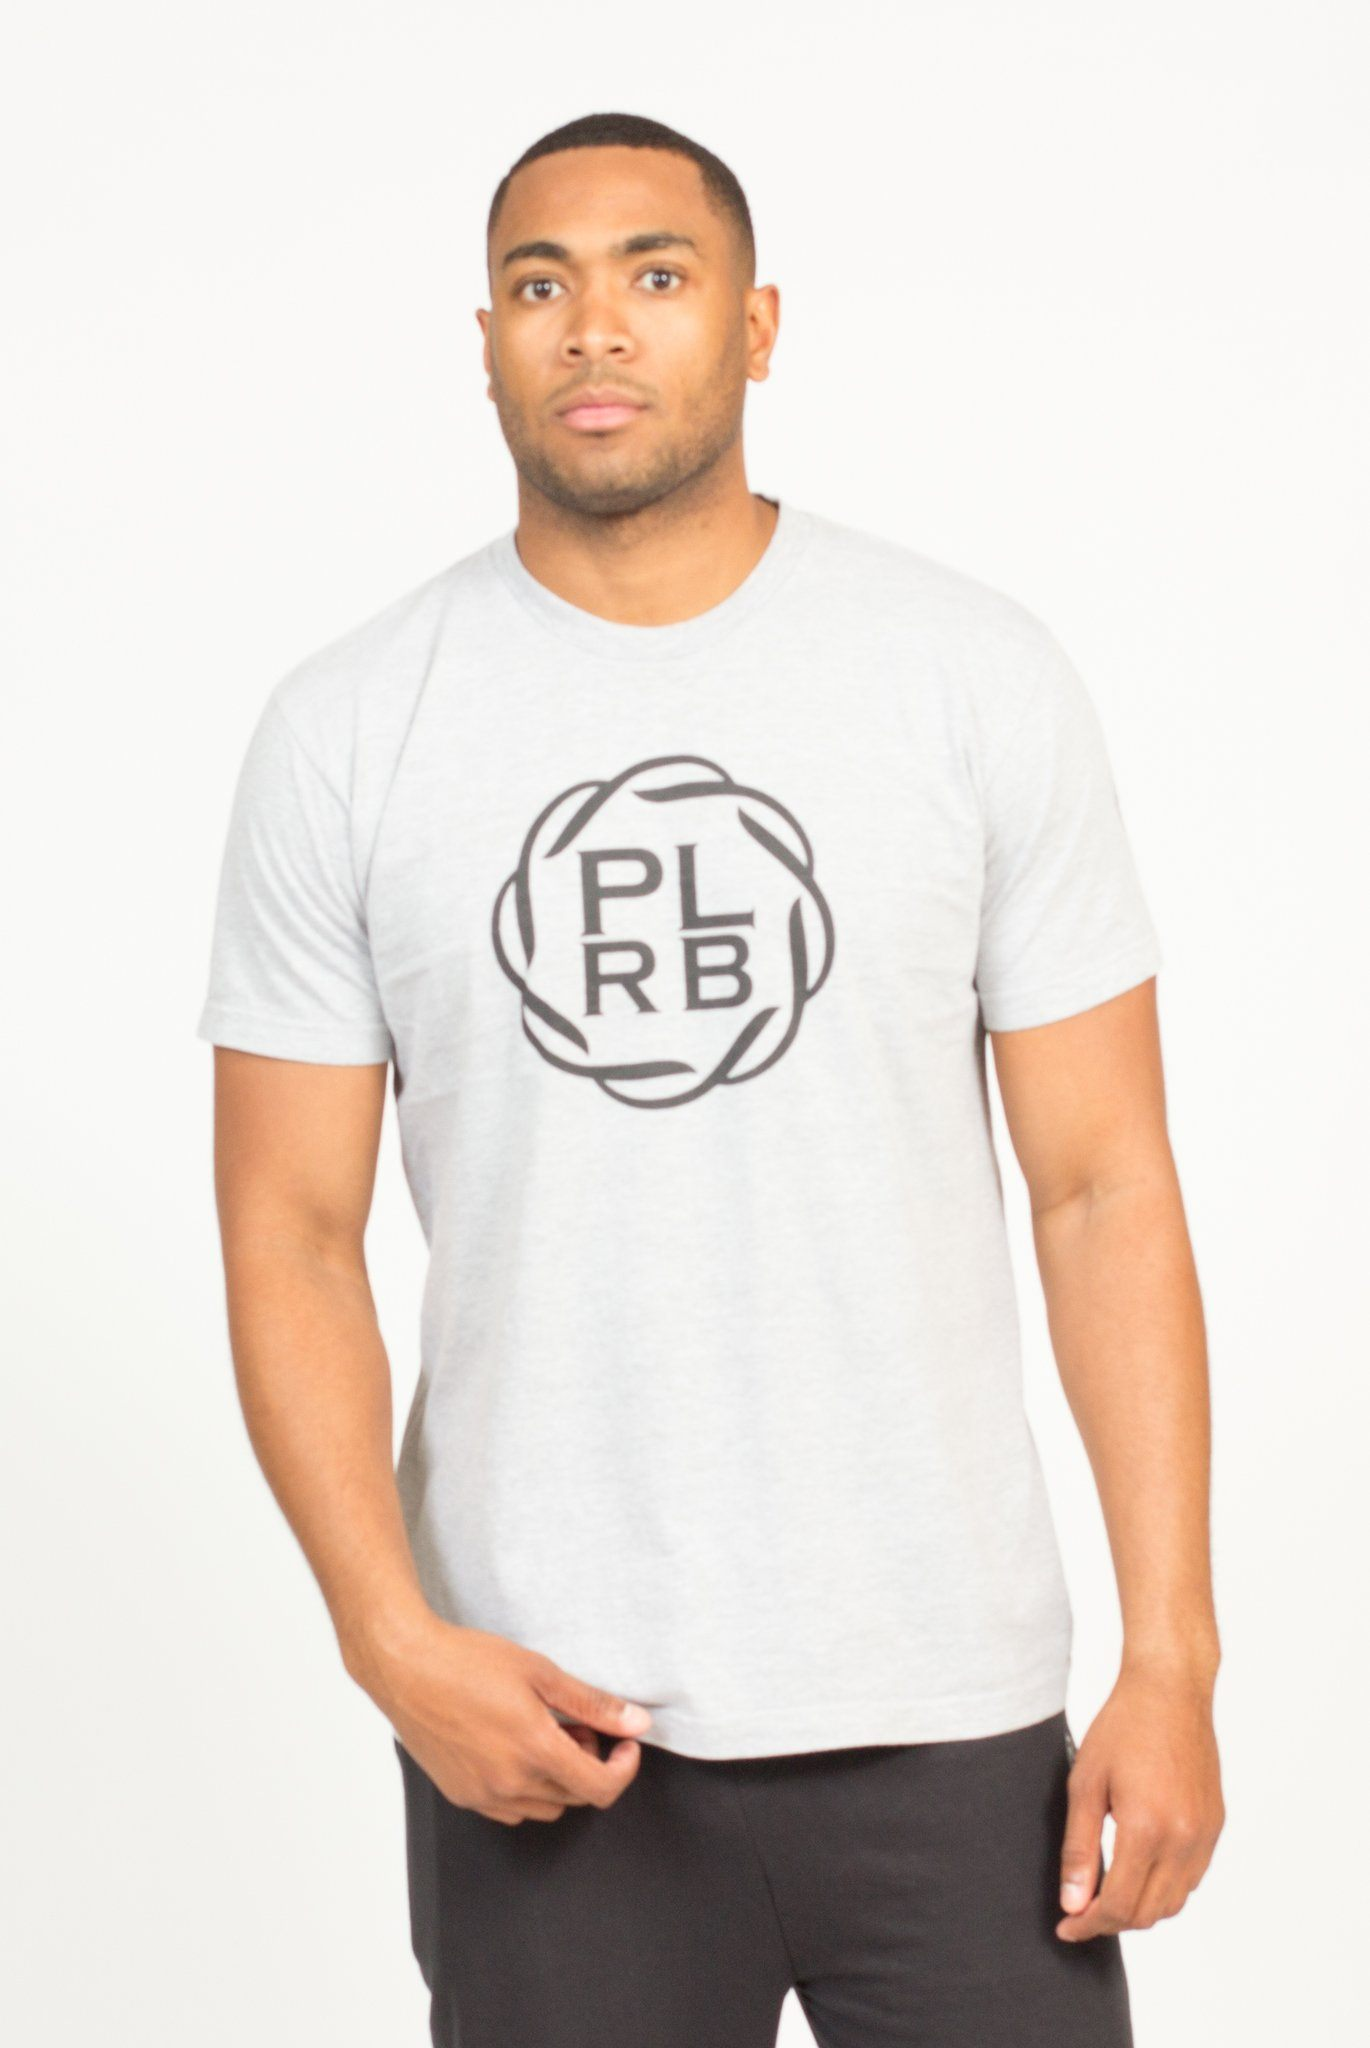 PLRB LOGO T-SHIRT IN HEATHER GREY | Poor Little Rich Boy Clothing